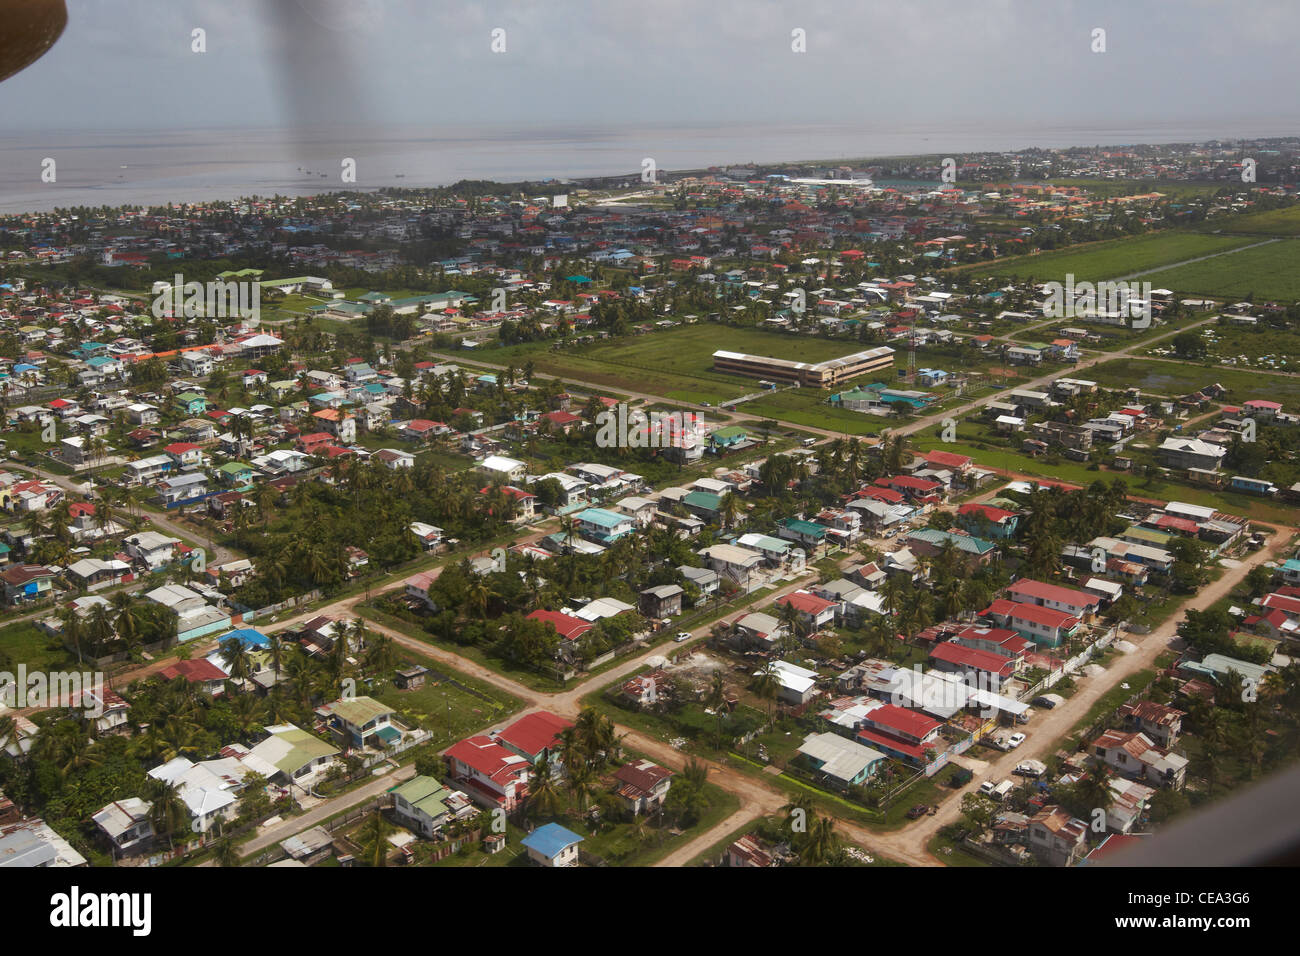 Aerial view of Georgetown, Guyana, South America, showing the urban sprawl and housing development. - Stock Image